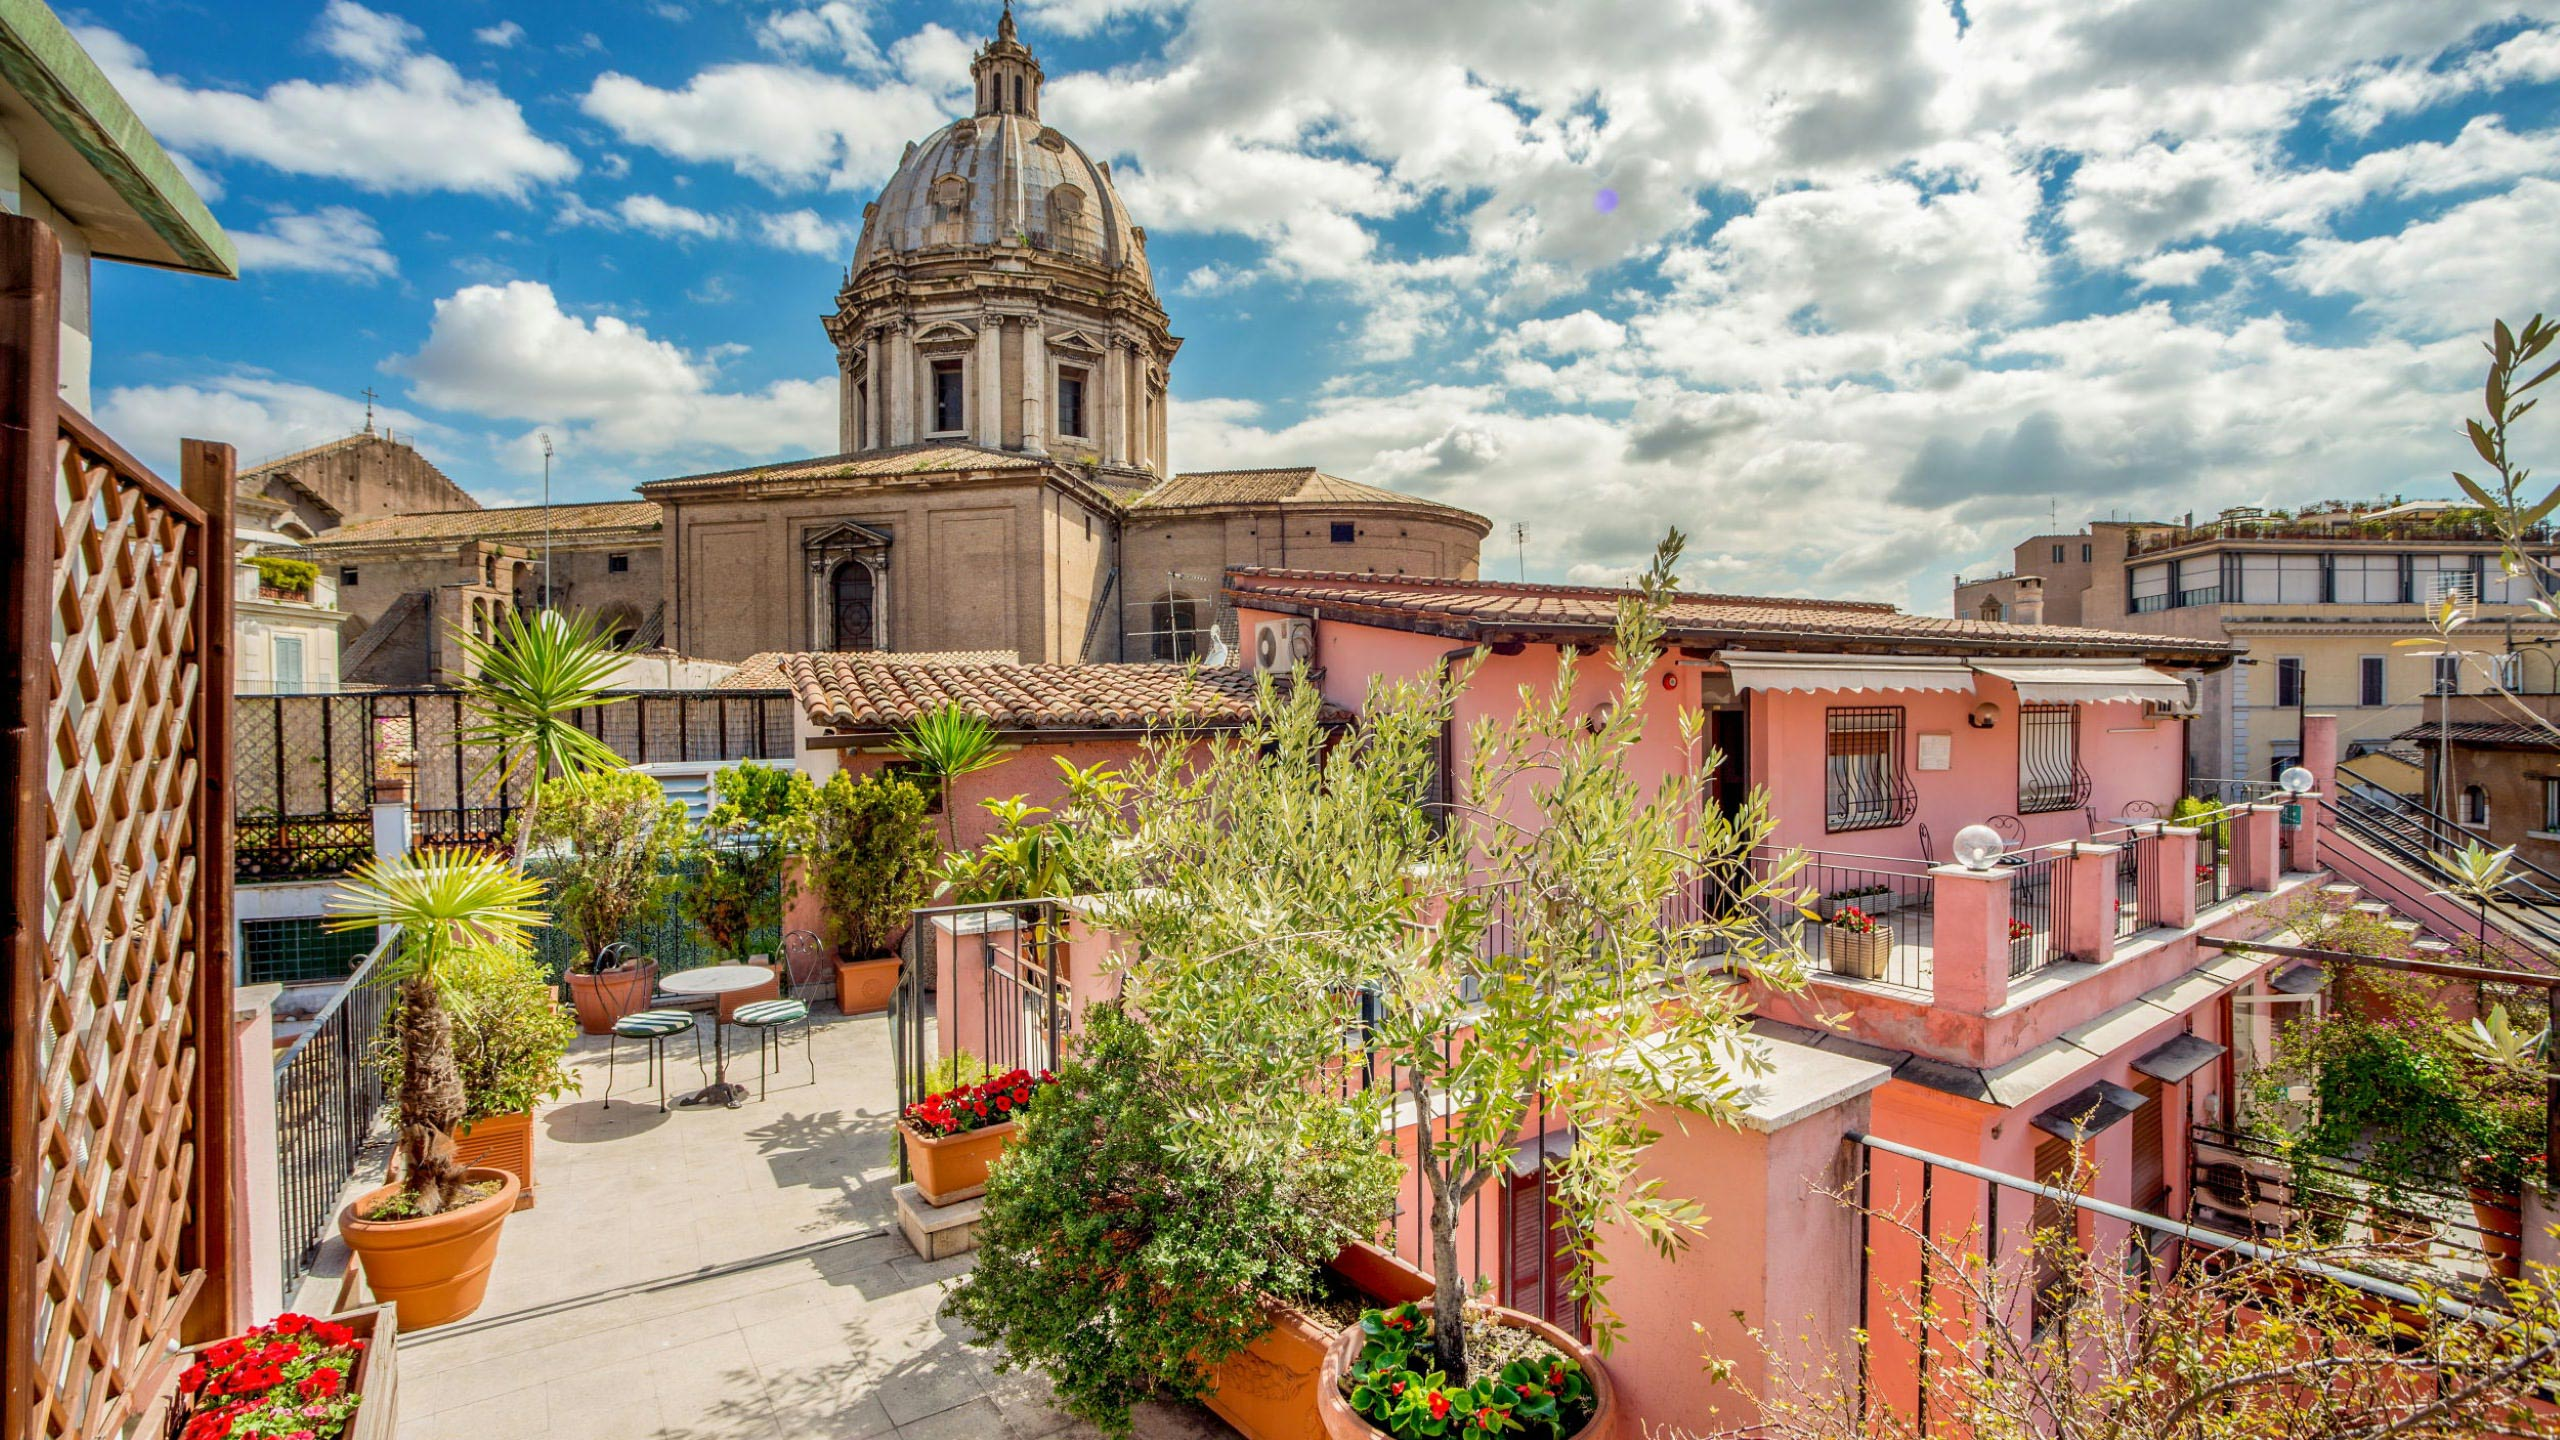 hotel-sole-rome-external11